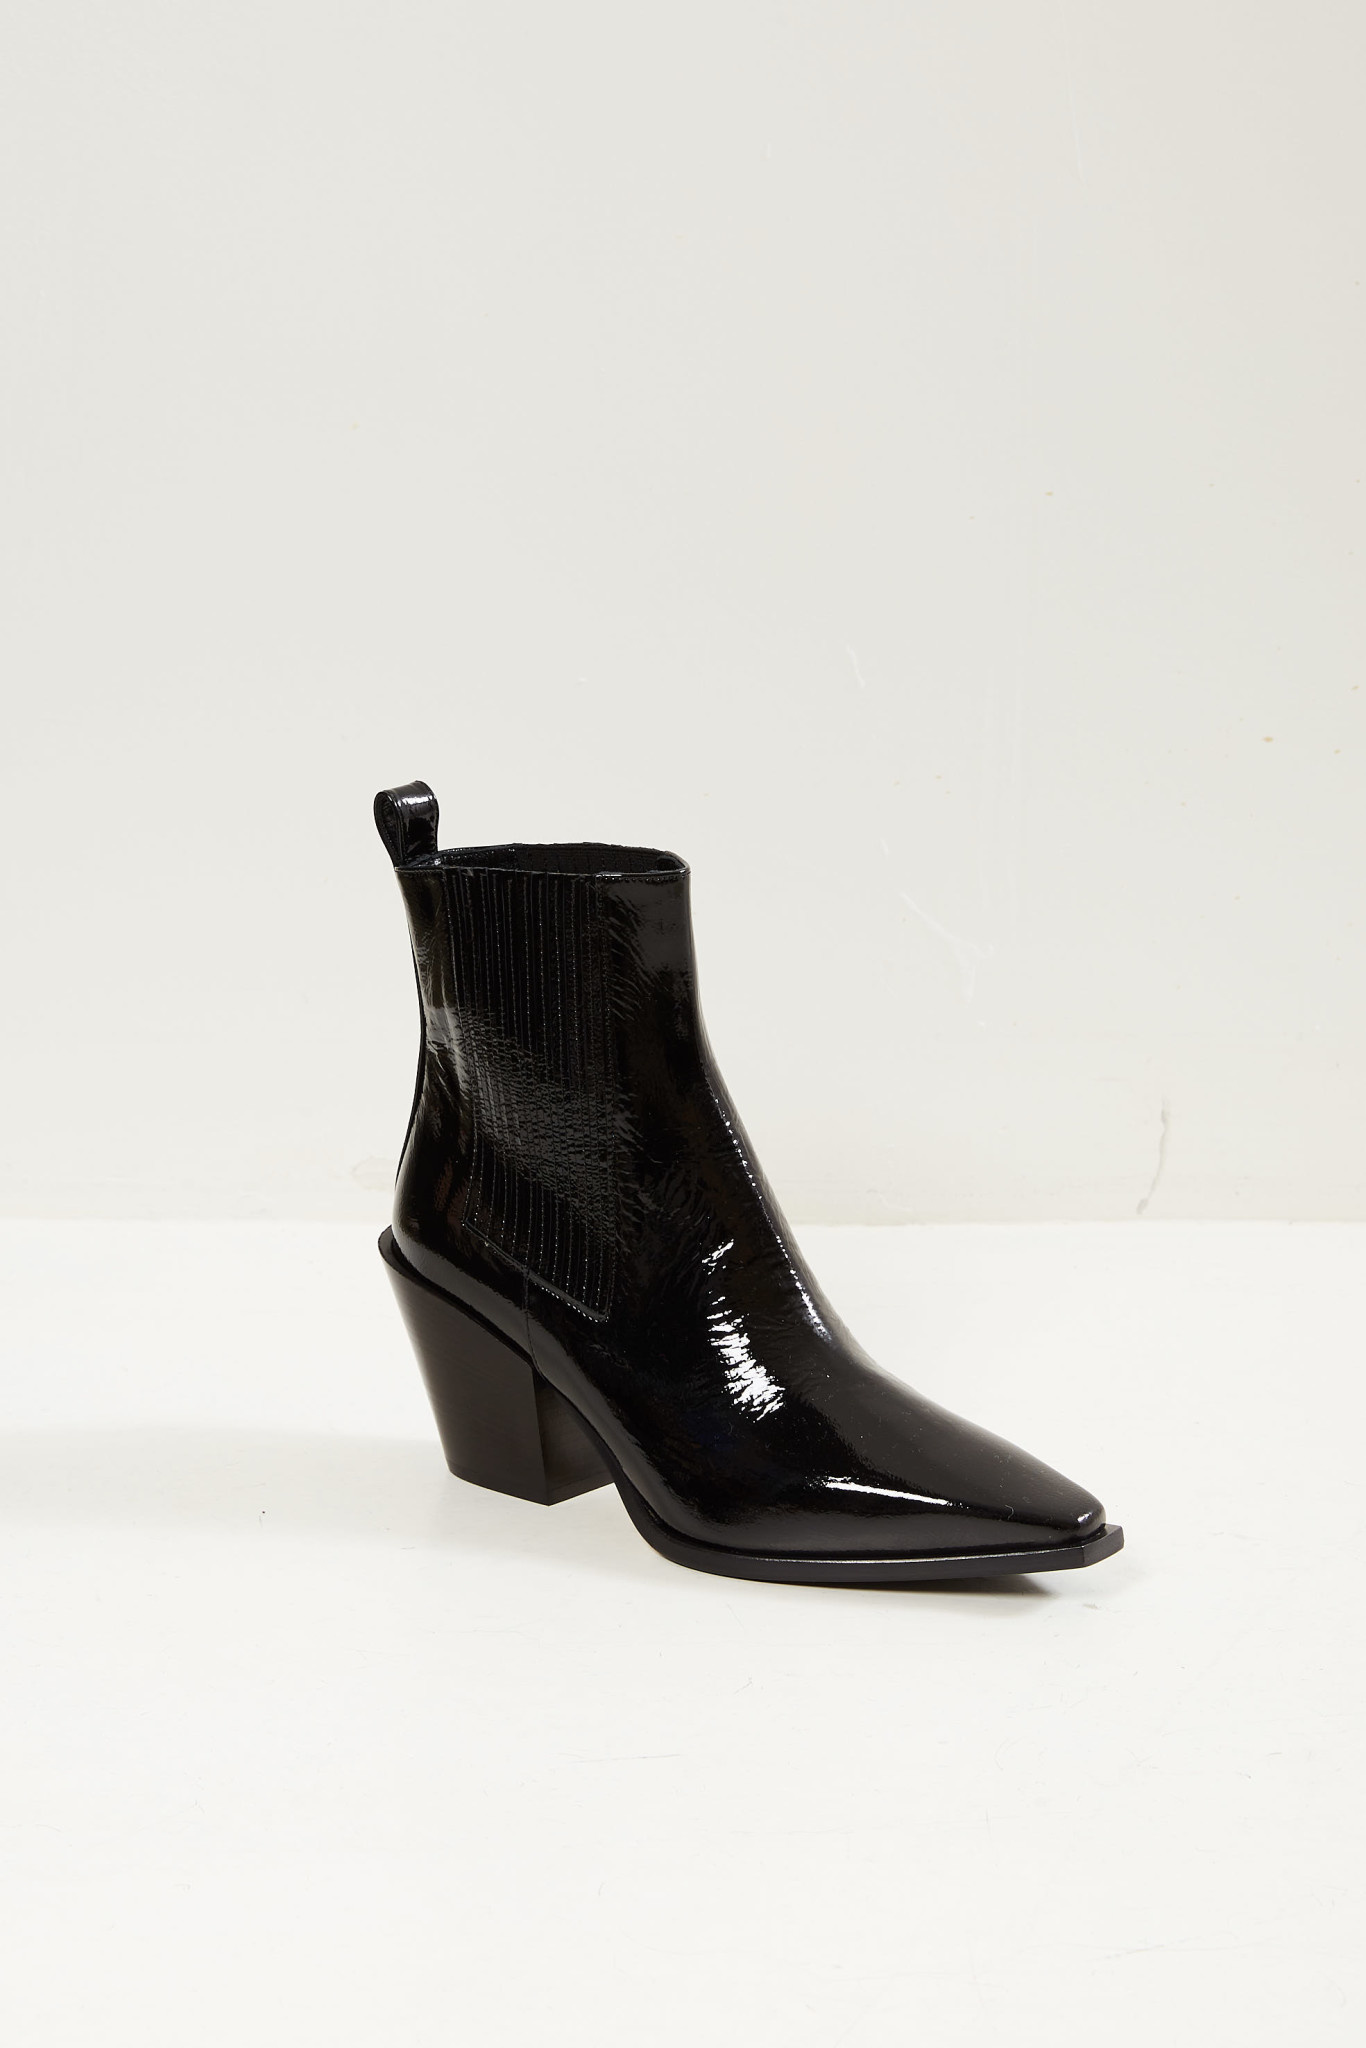 Aeyde - Kate pointed boots.